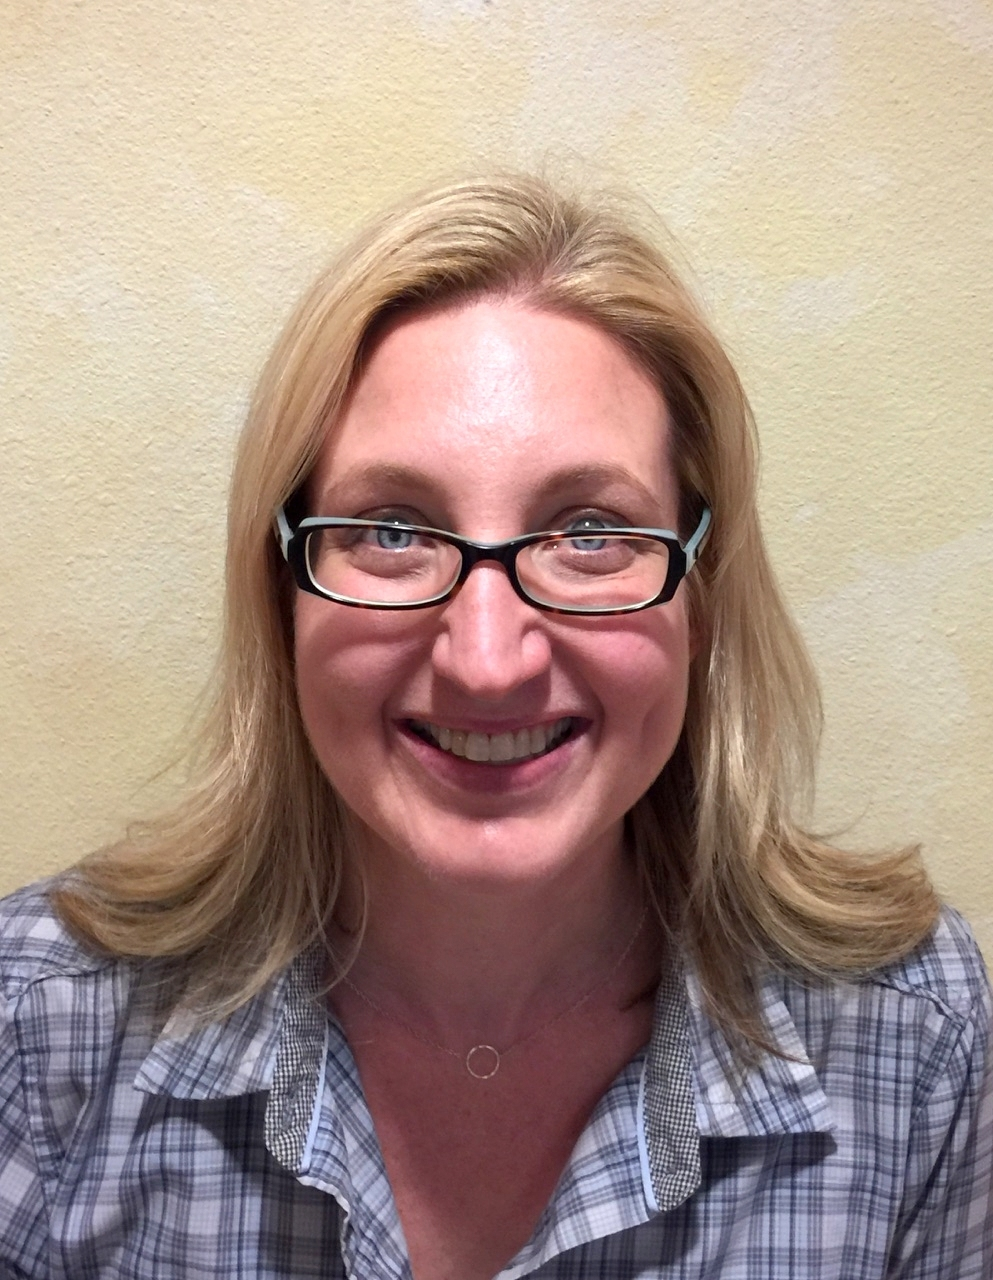 Physical therapy assistantlos angeles - Lara Is A Graduate Of The University Of Puget Sound Before She Managed The Office Her Background As Our Physical Therapy Aide